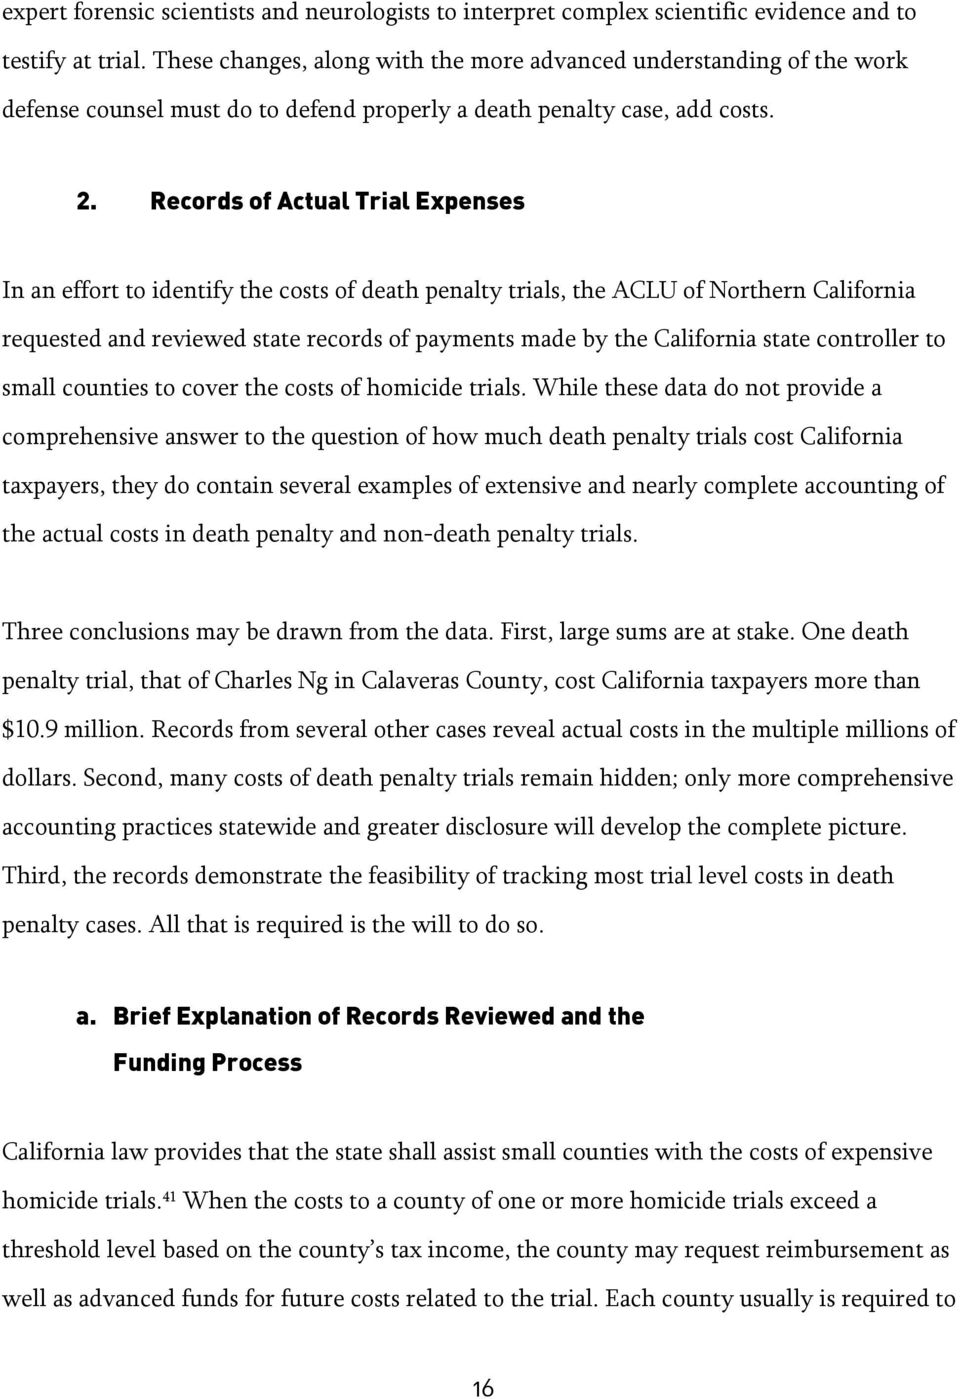 Records of Actual Trial Expenses In an effort to identify the costs of death penalty trials, the ACLU of Northern California requested and reviewed state records of payments made by the California